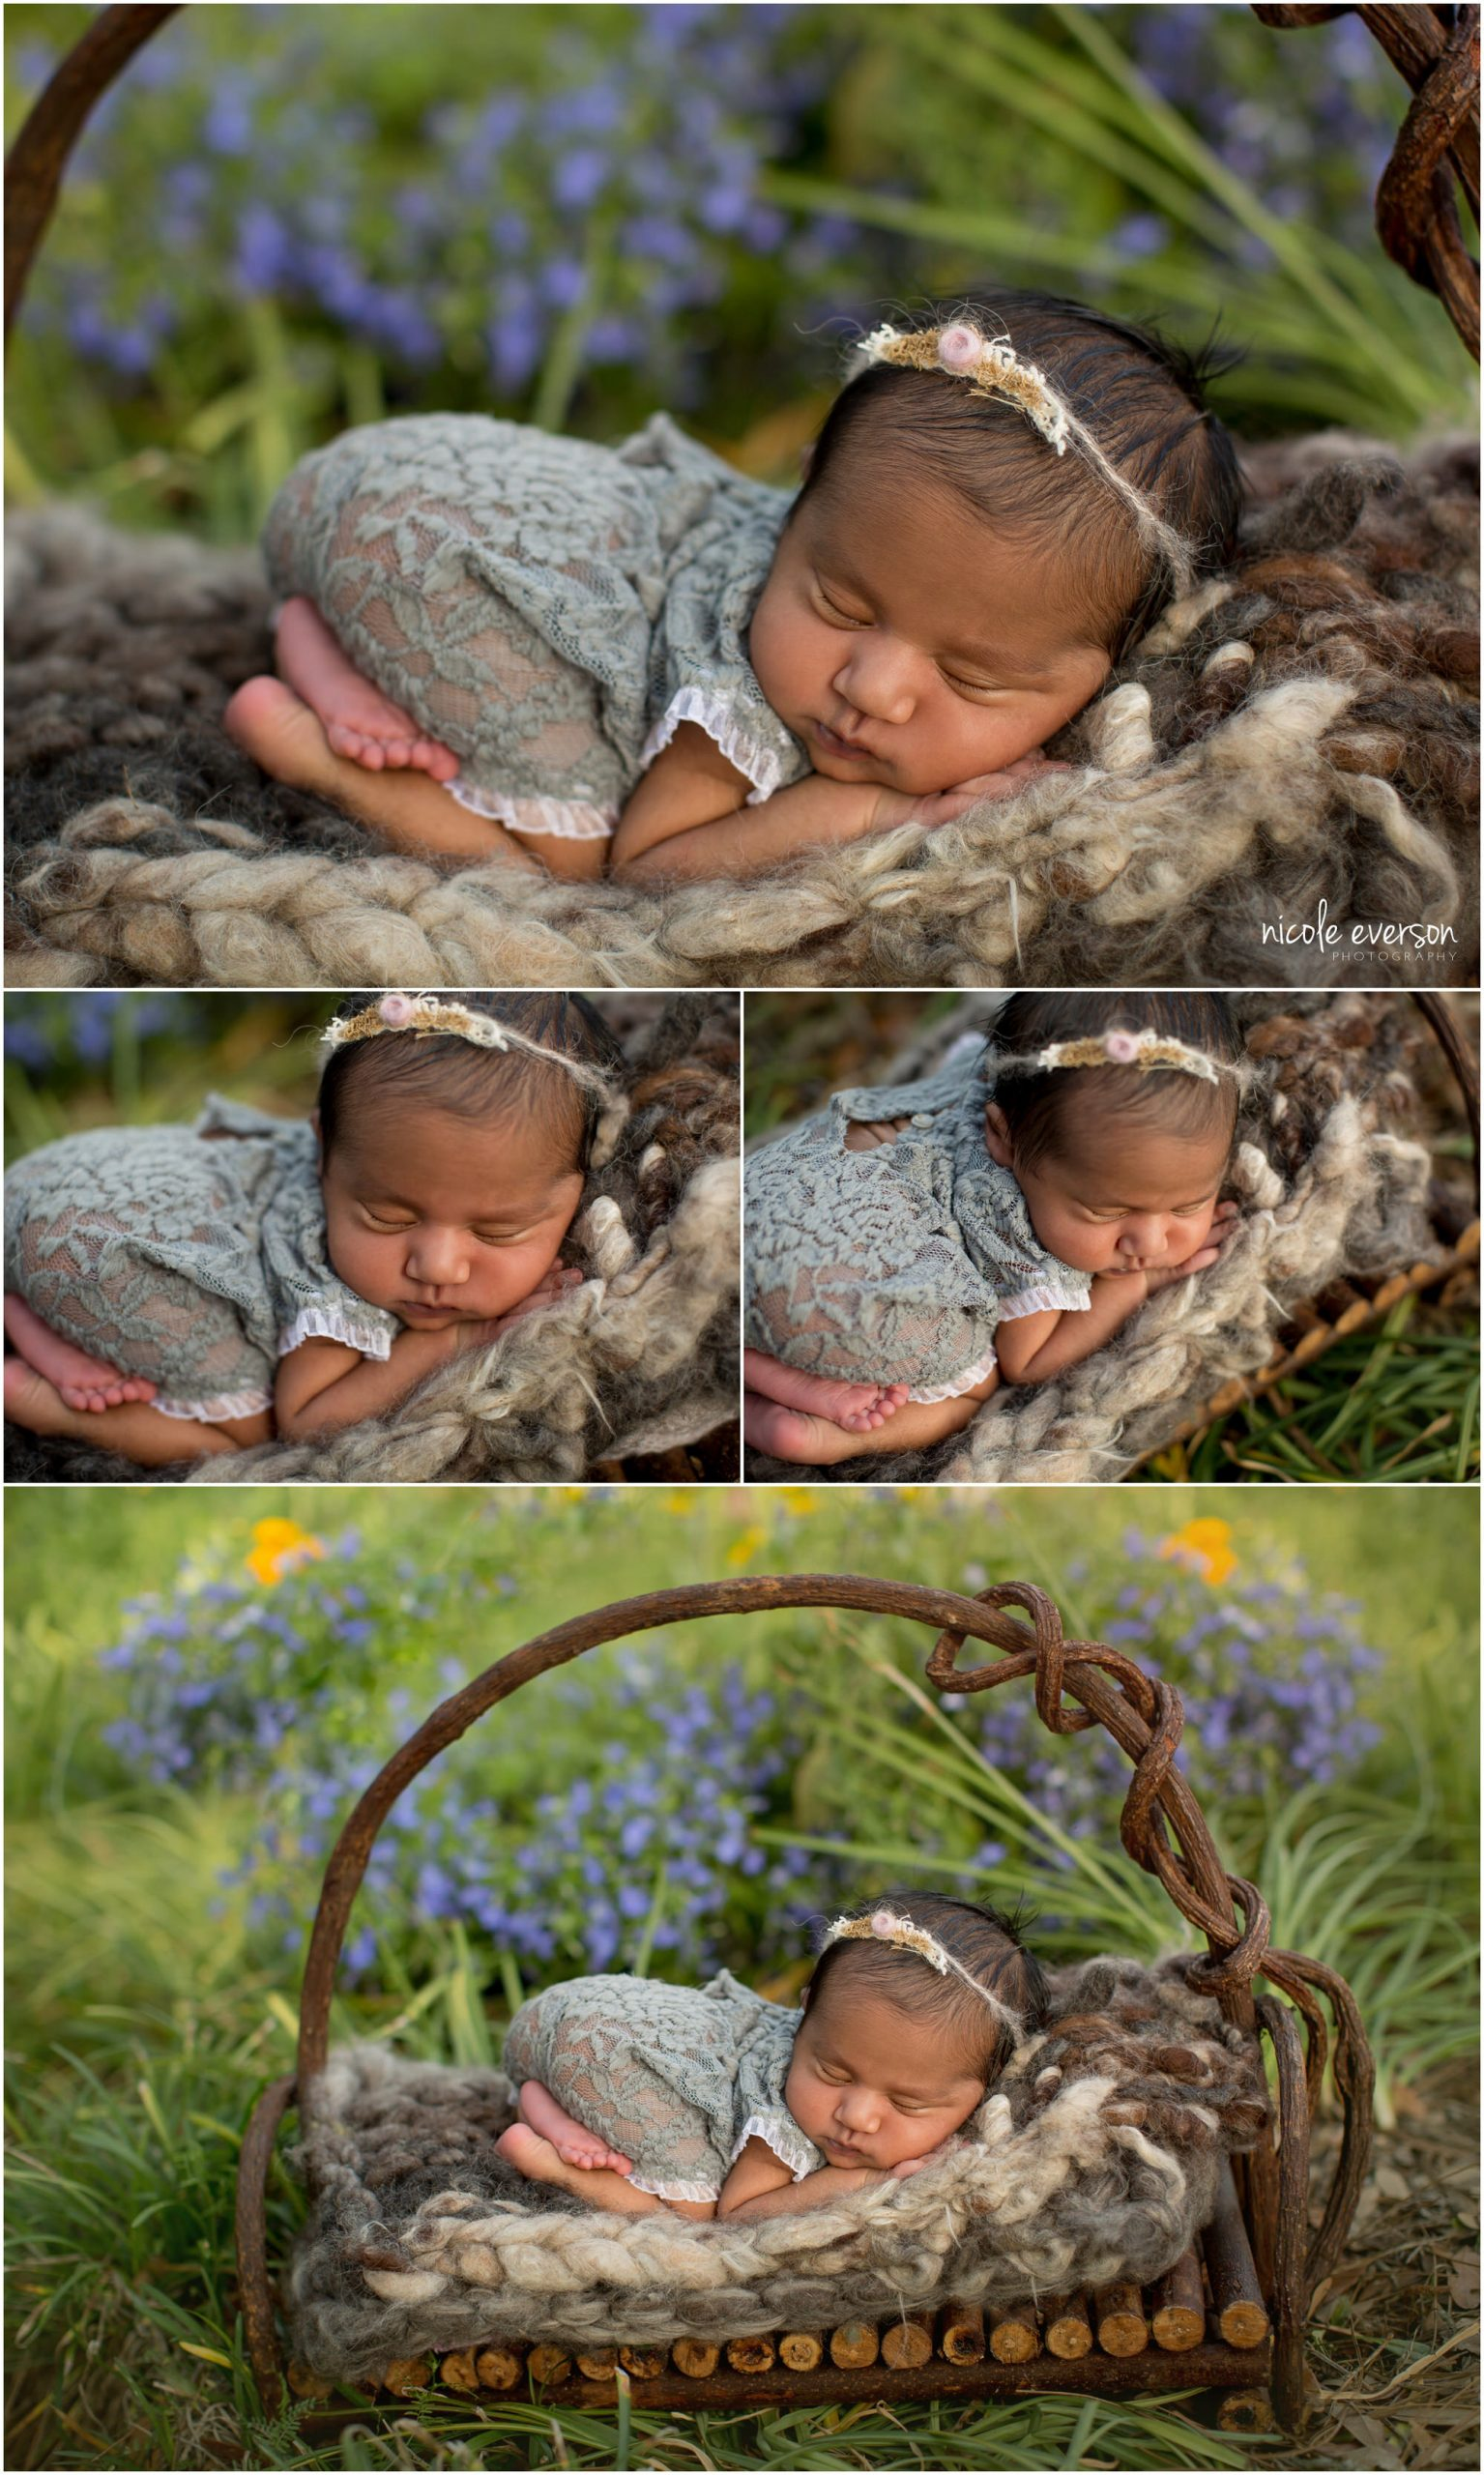 Tallahassee Newborn Portraits. Newborn baby girl in a grey lace outfit snuggled in a basket in a garden. Nicole Everson Photography.